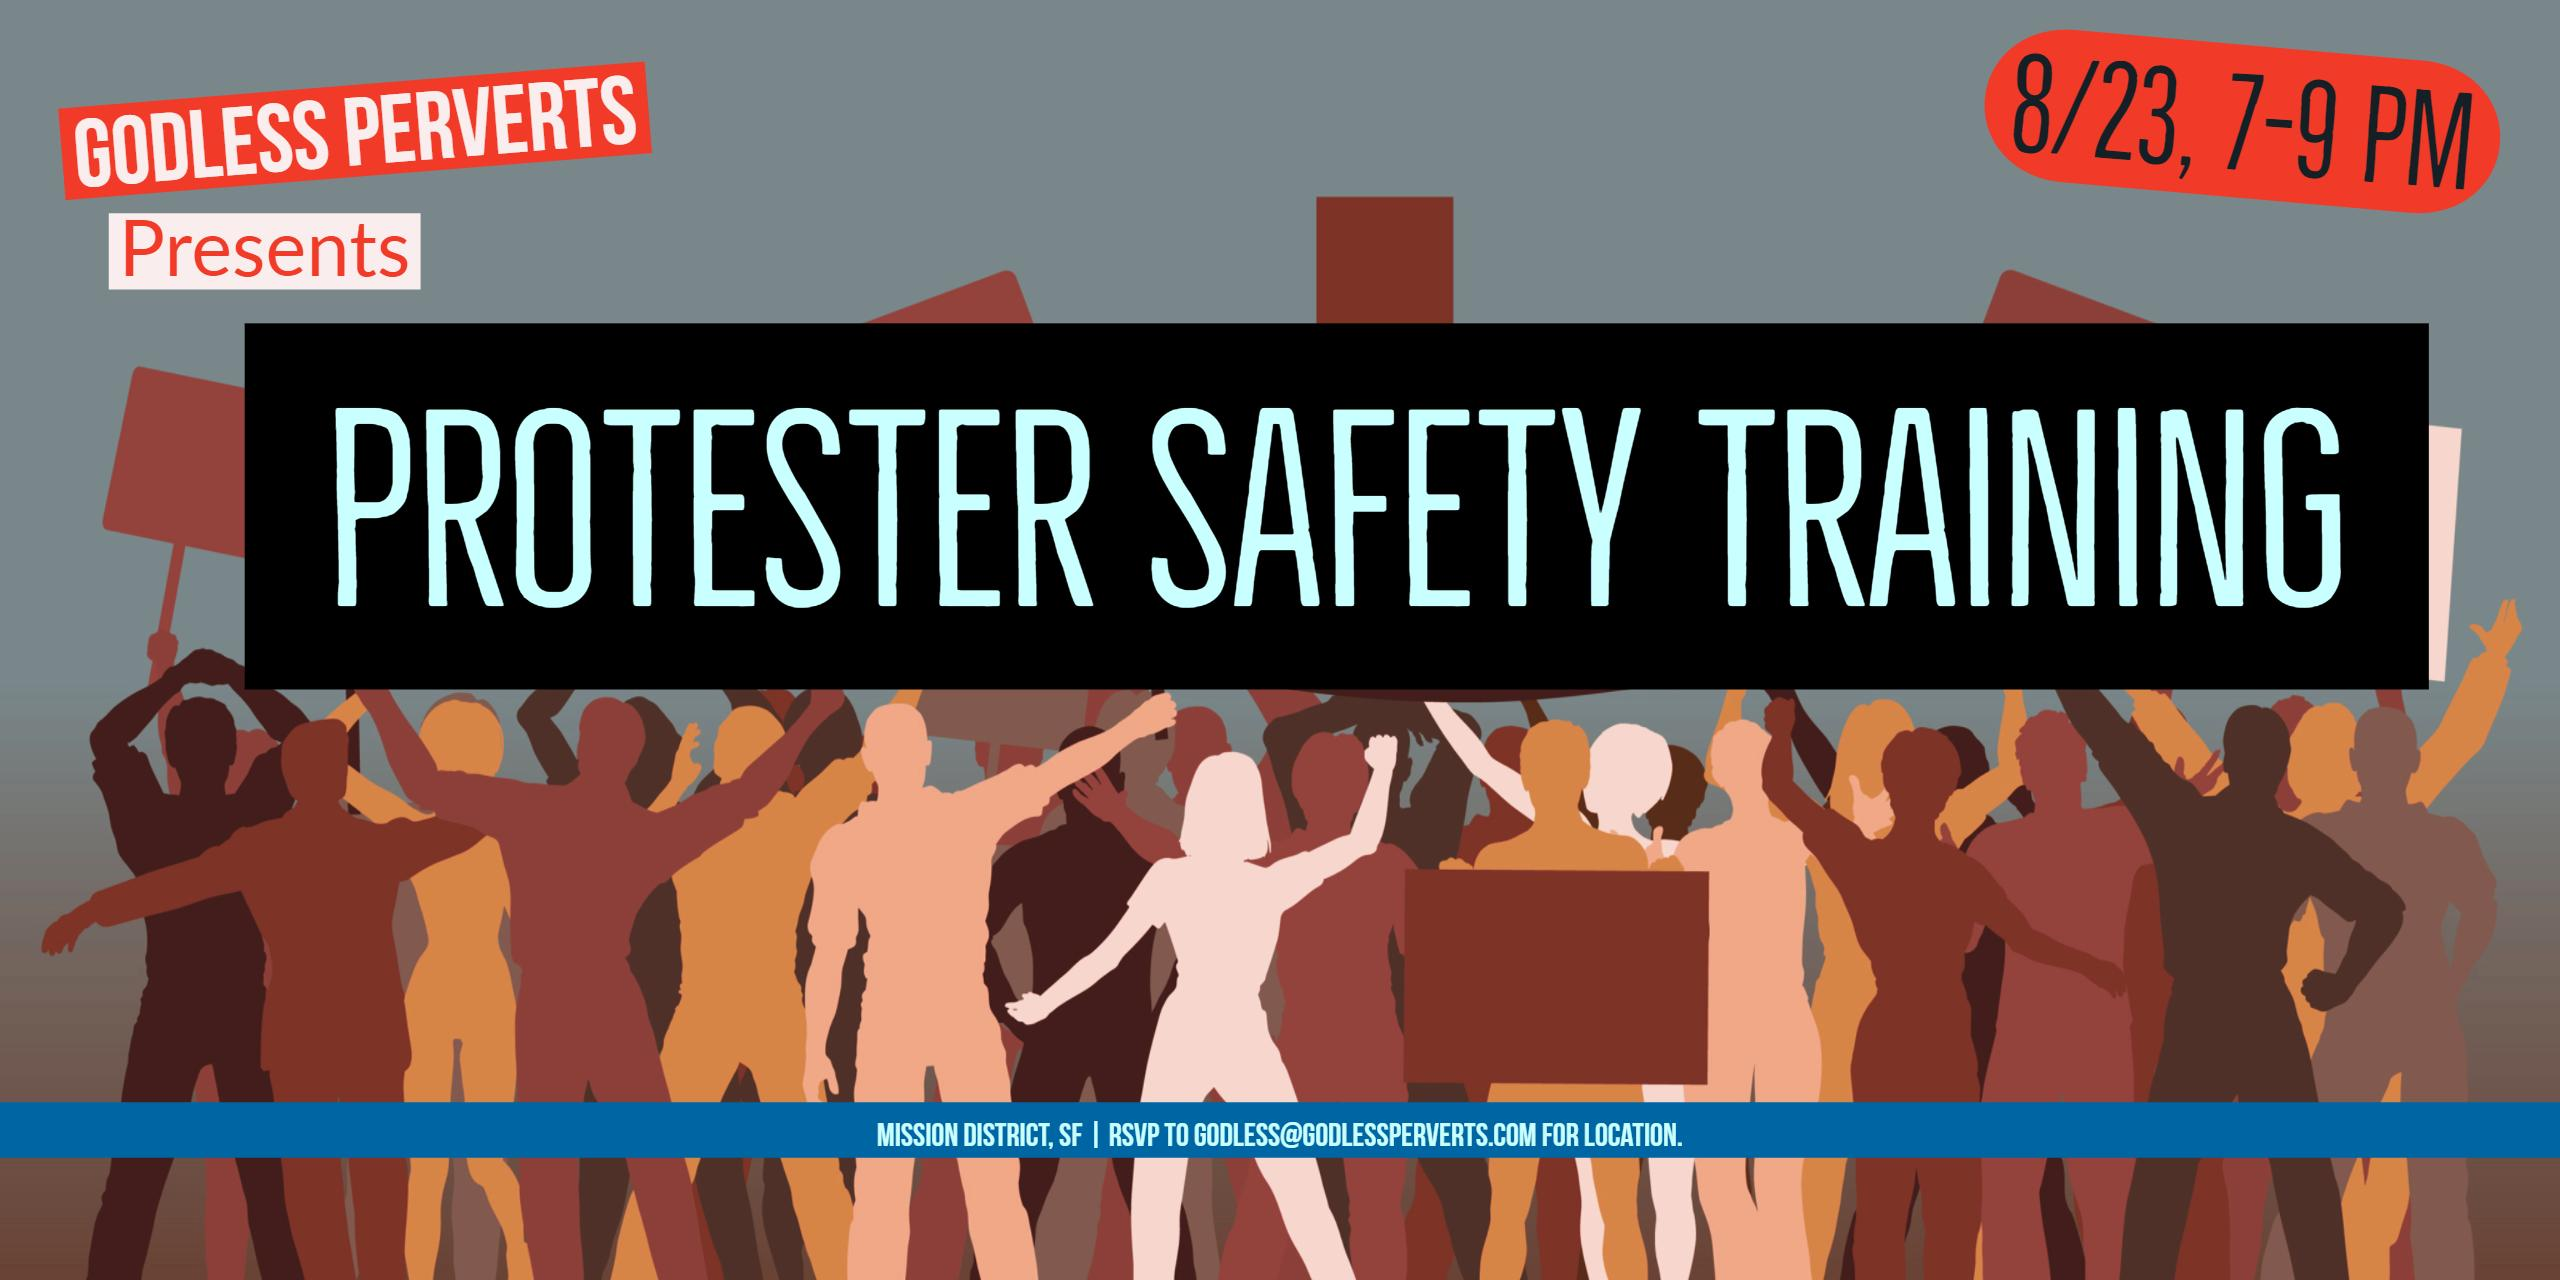 Protester Safety Training. SF Mission, 7-9 PM 8/23